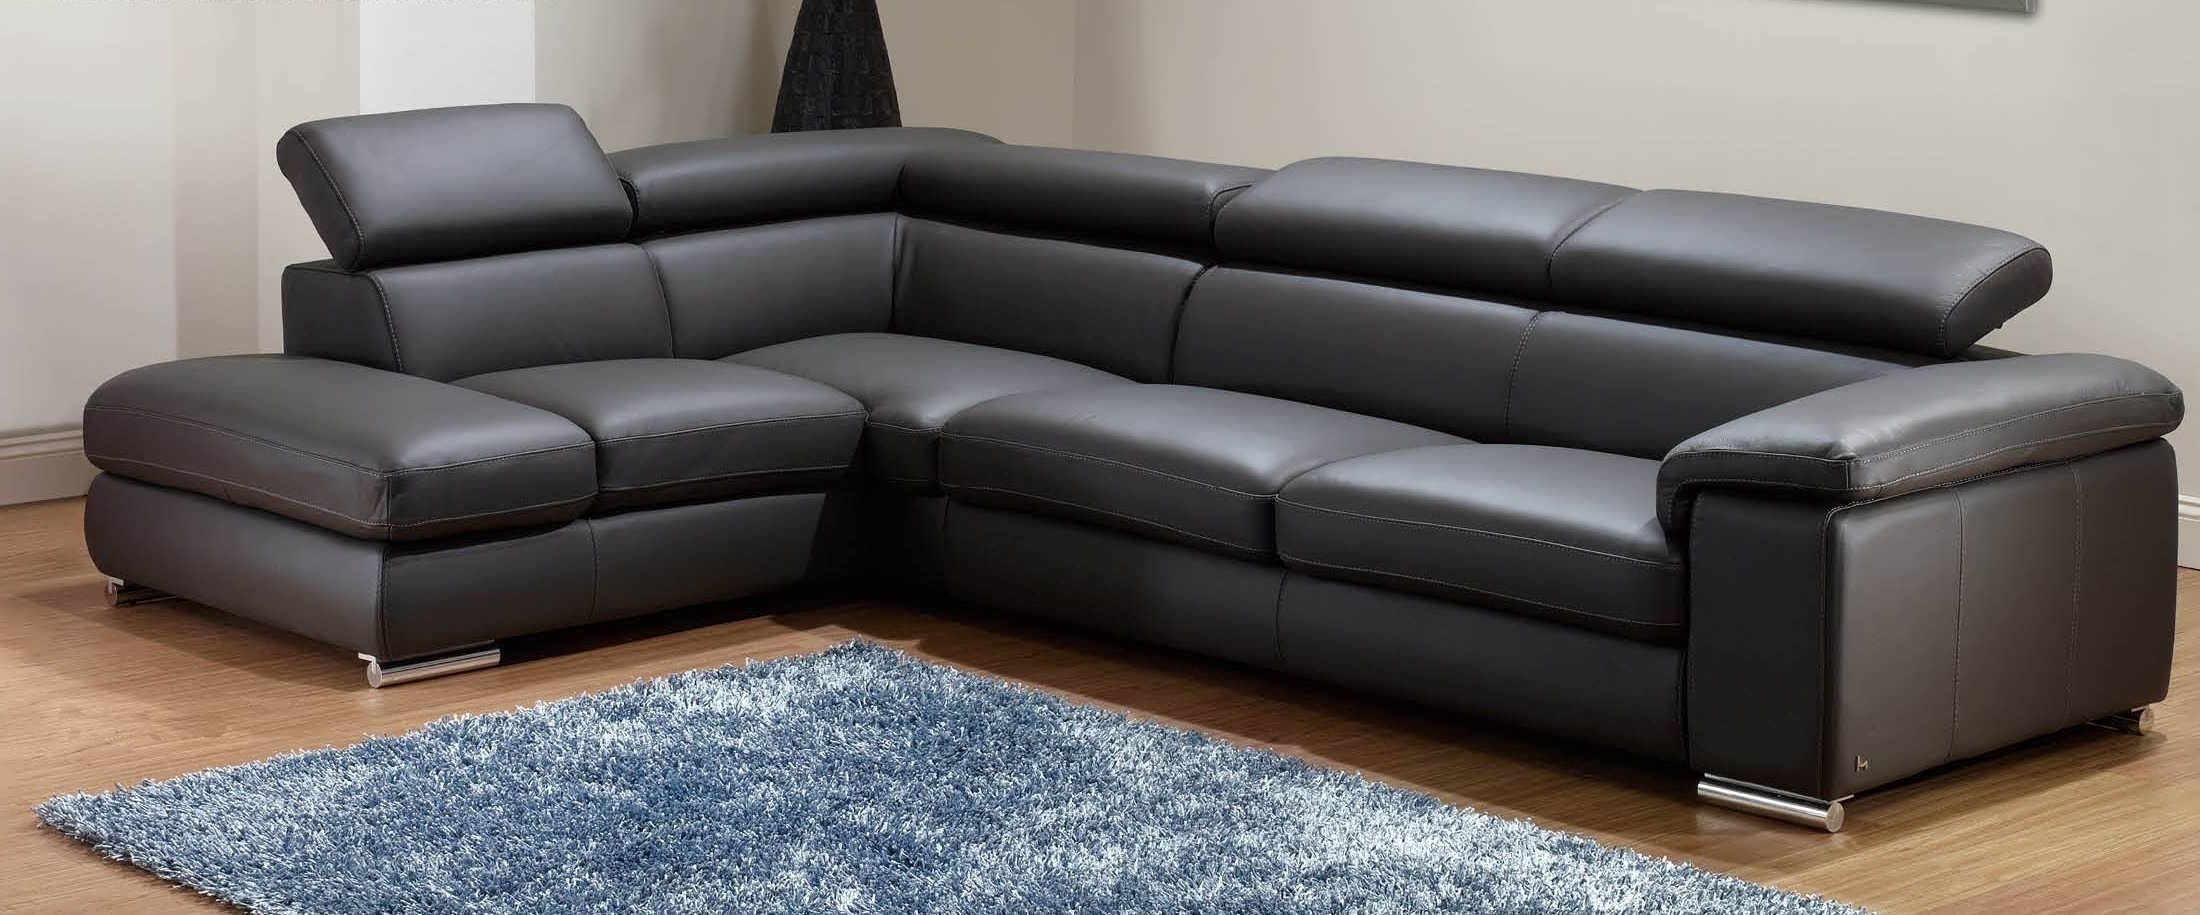 Well Known Small Sectionals With Chaise With Regard To Sofa : Chaise Sofa Double Chaise Sectional Small L Shaped Couch (View 3 of 15)